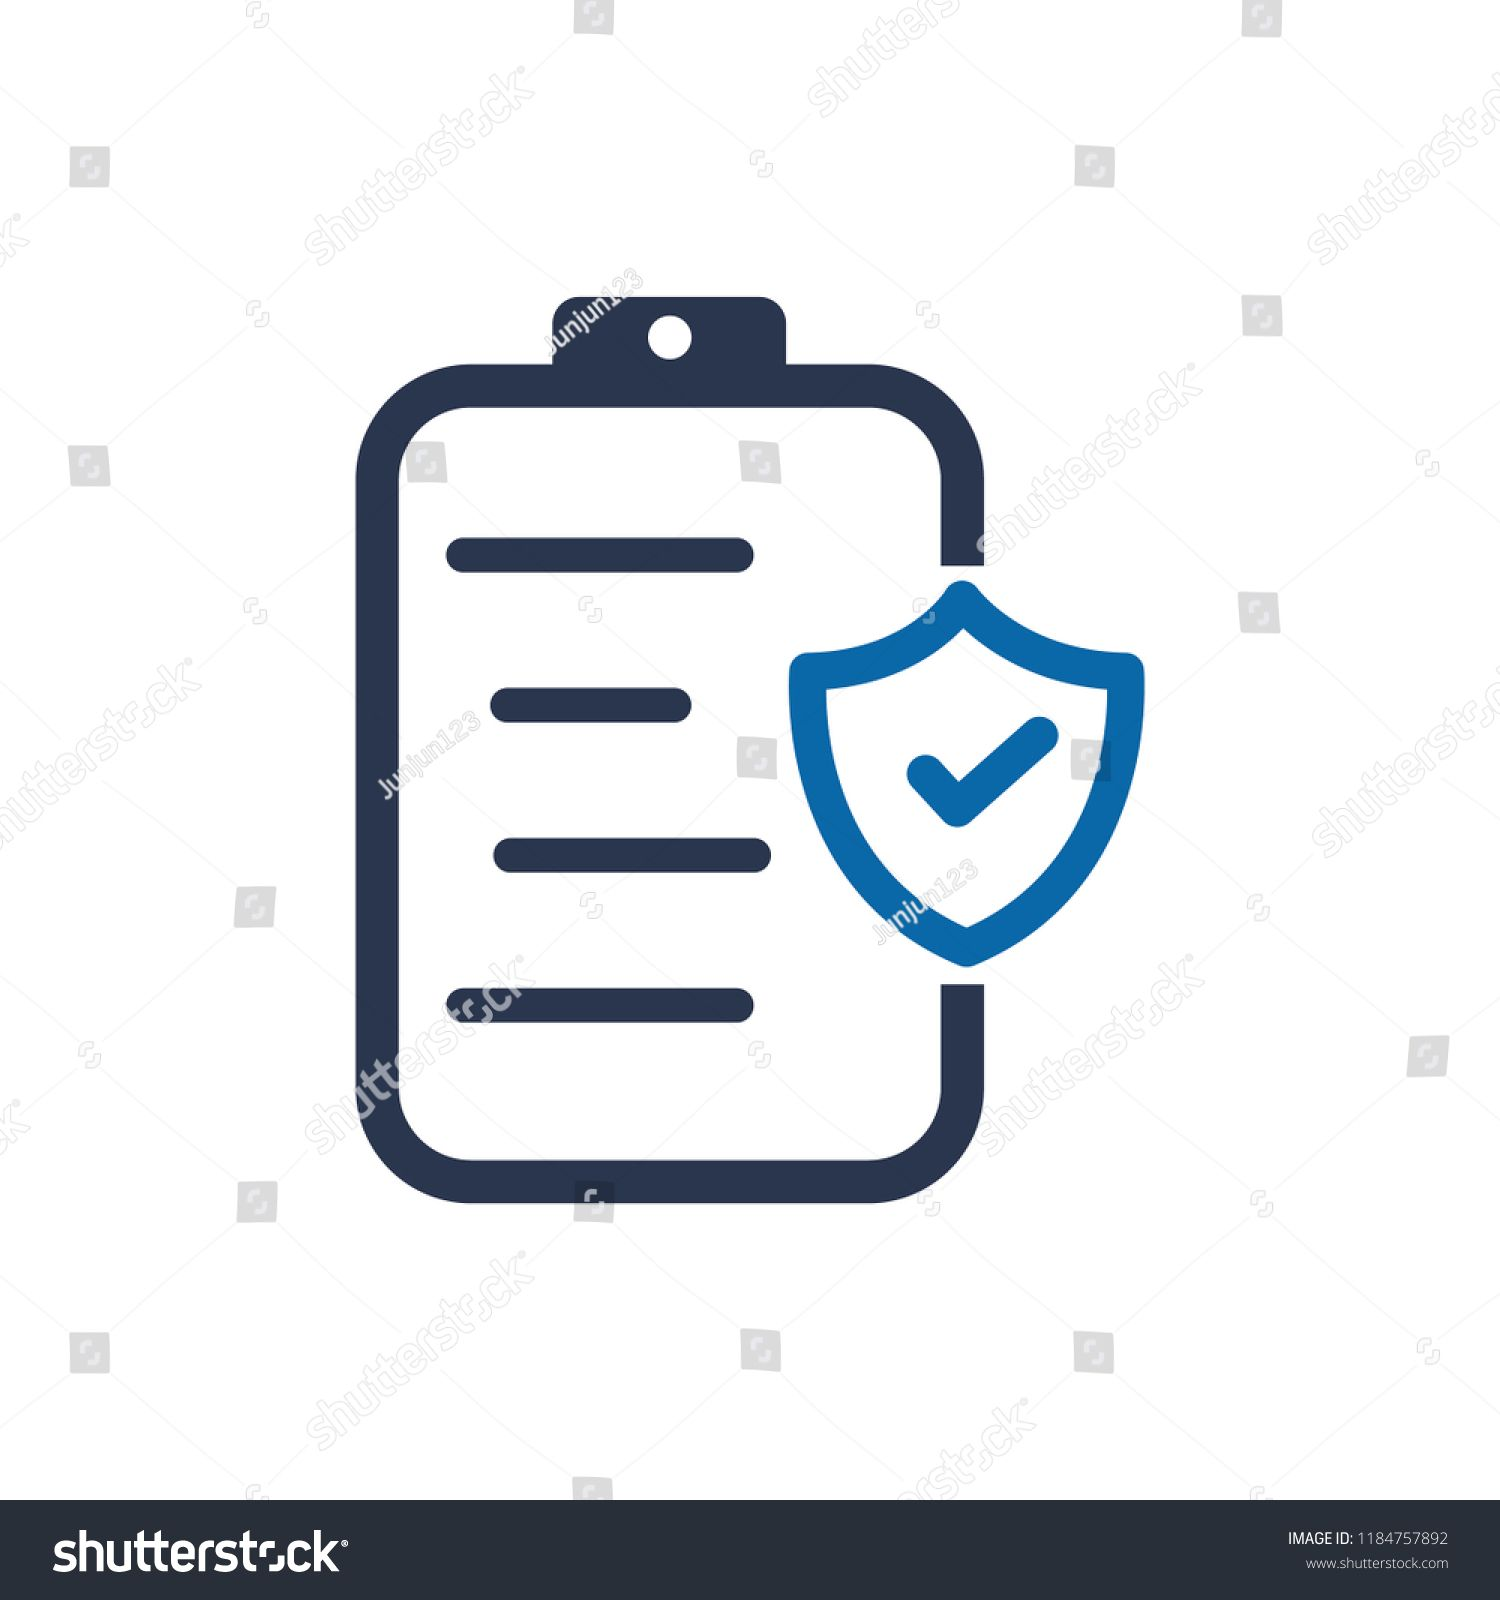 Insurance Policy Concept Insurance Policy Icon Policy Insurance Concept Icon Insurance Policy Concept Insurance